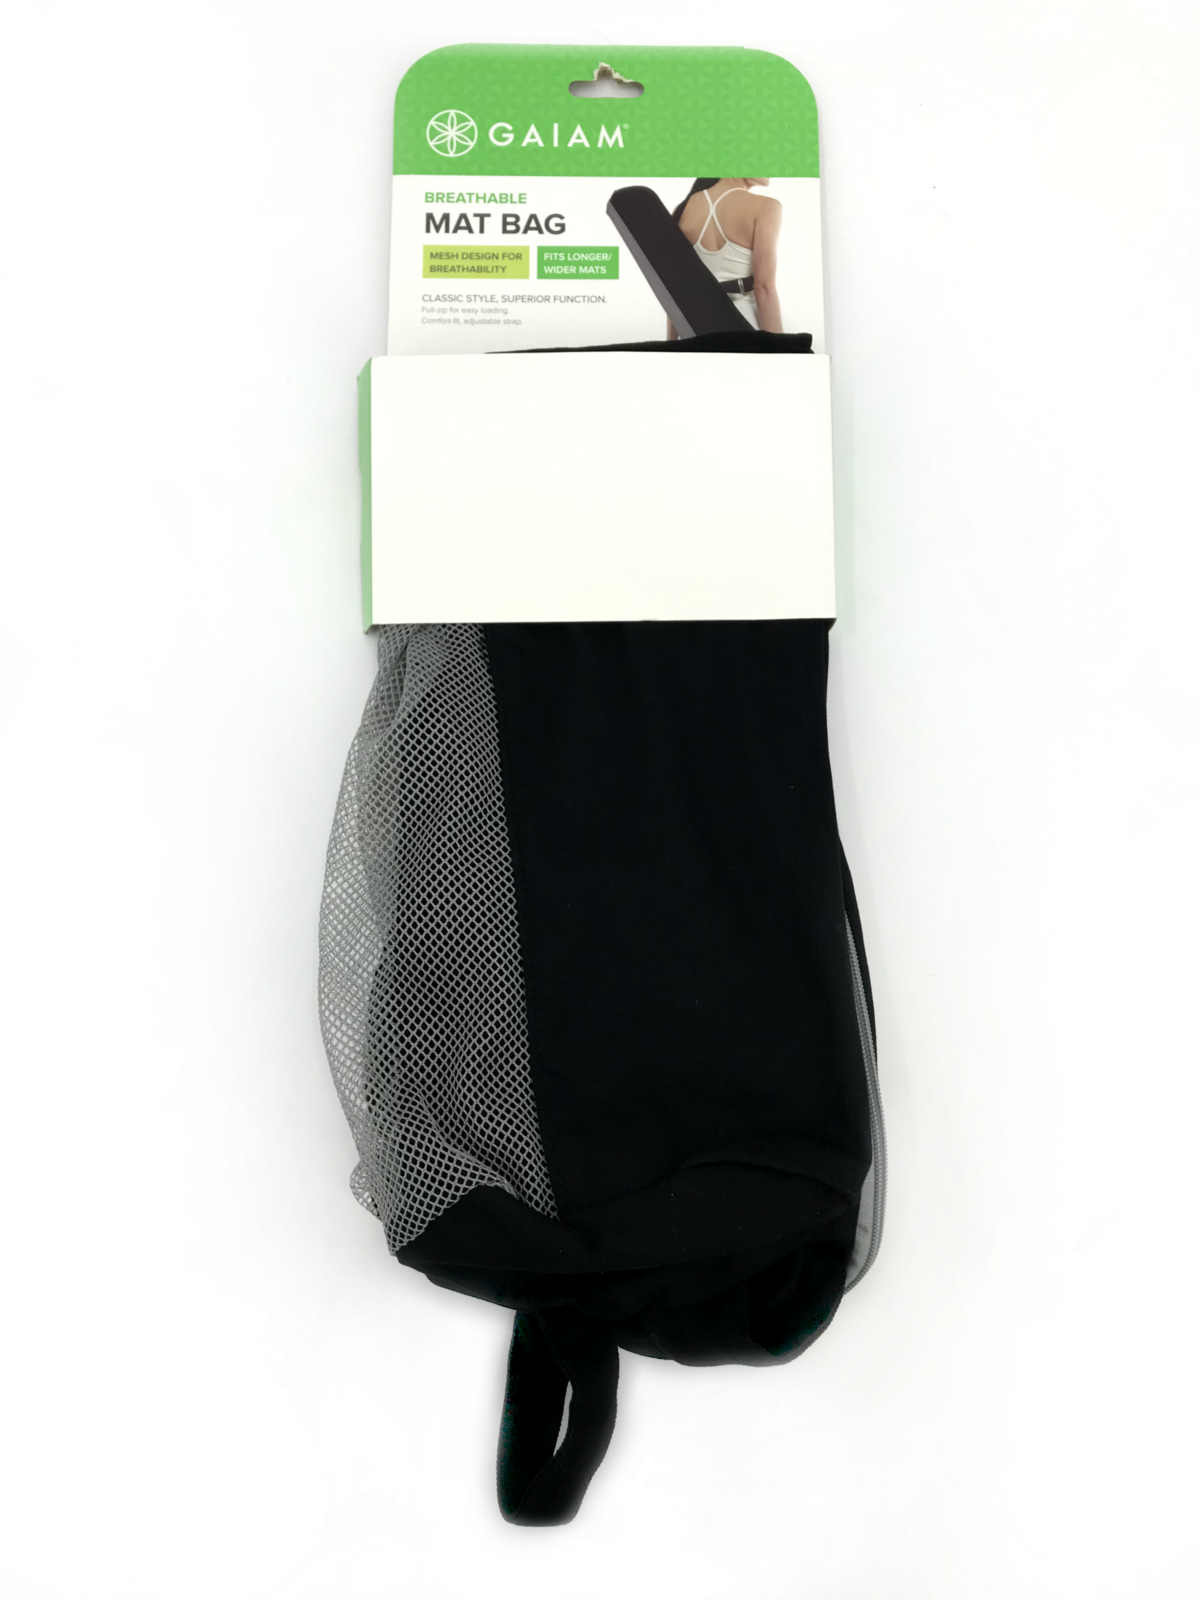 Gaiam Breathable Mat Bag Classic Style Black/Gray adjustable strap #2105 - £4.14 GBP